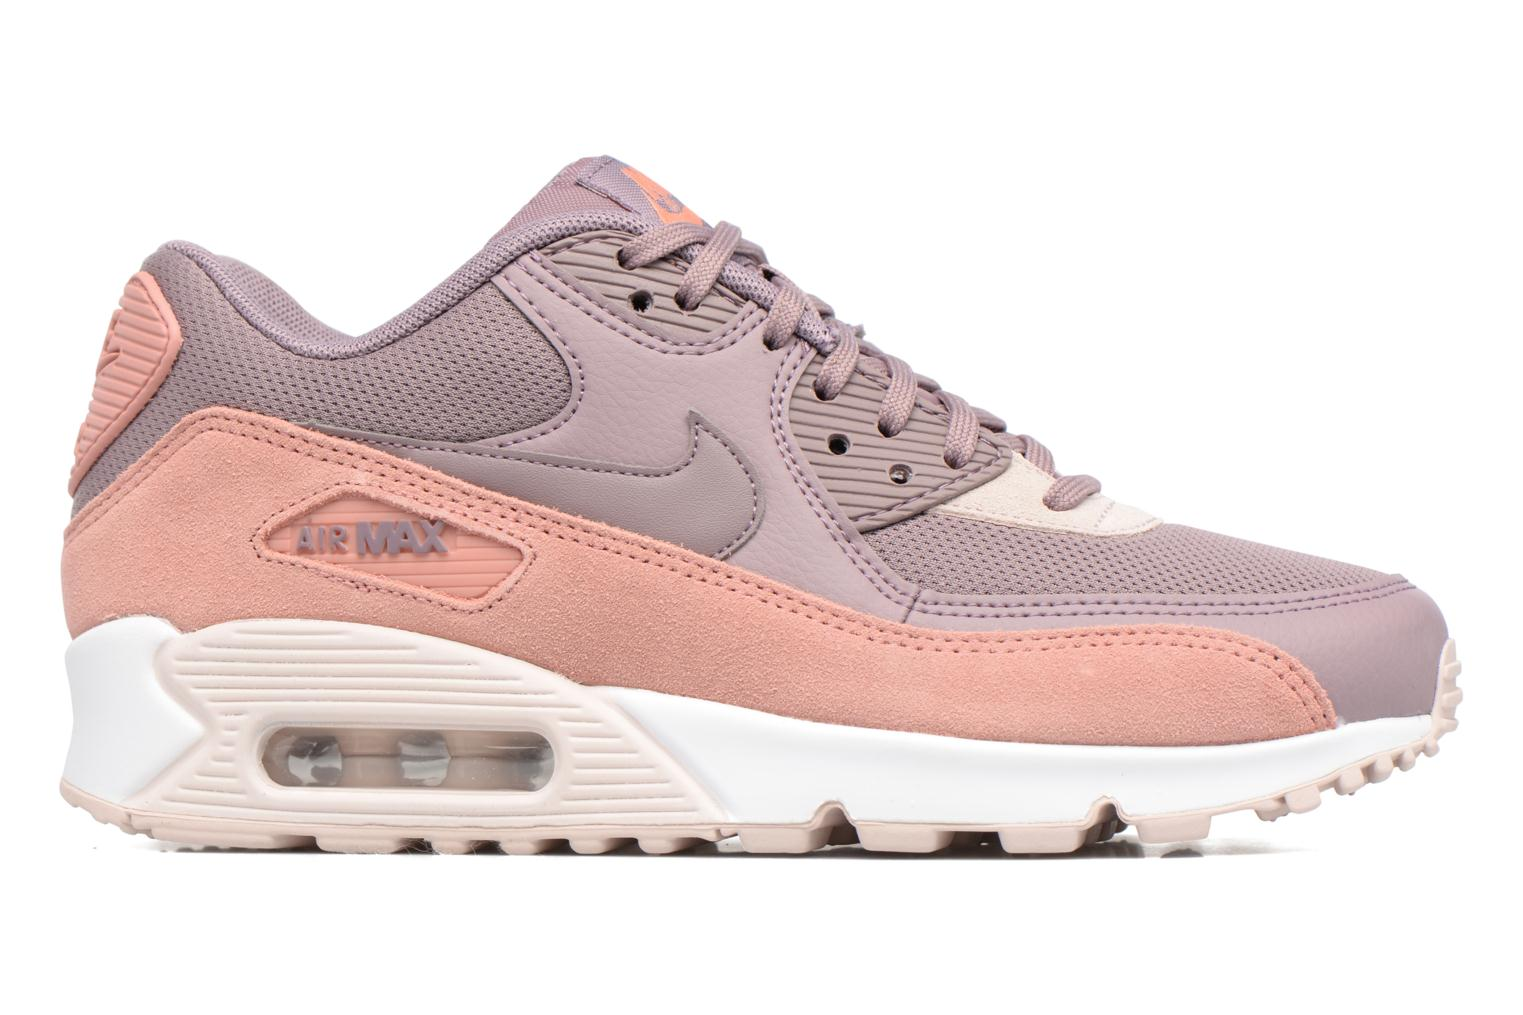 Wmns Air Max 90 Red Stardust/Taupe Grey-Silt Red-White